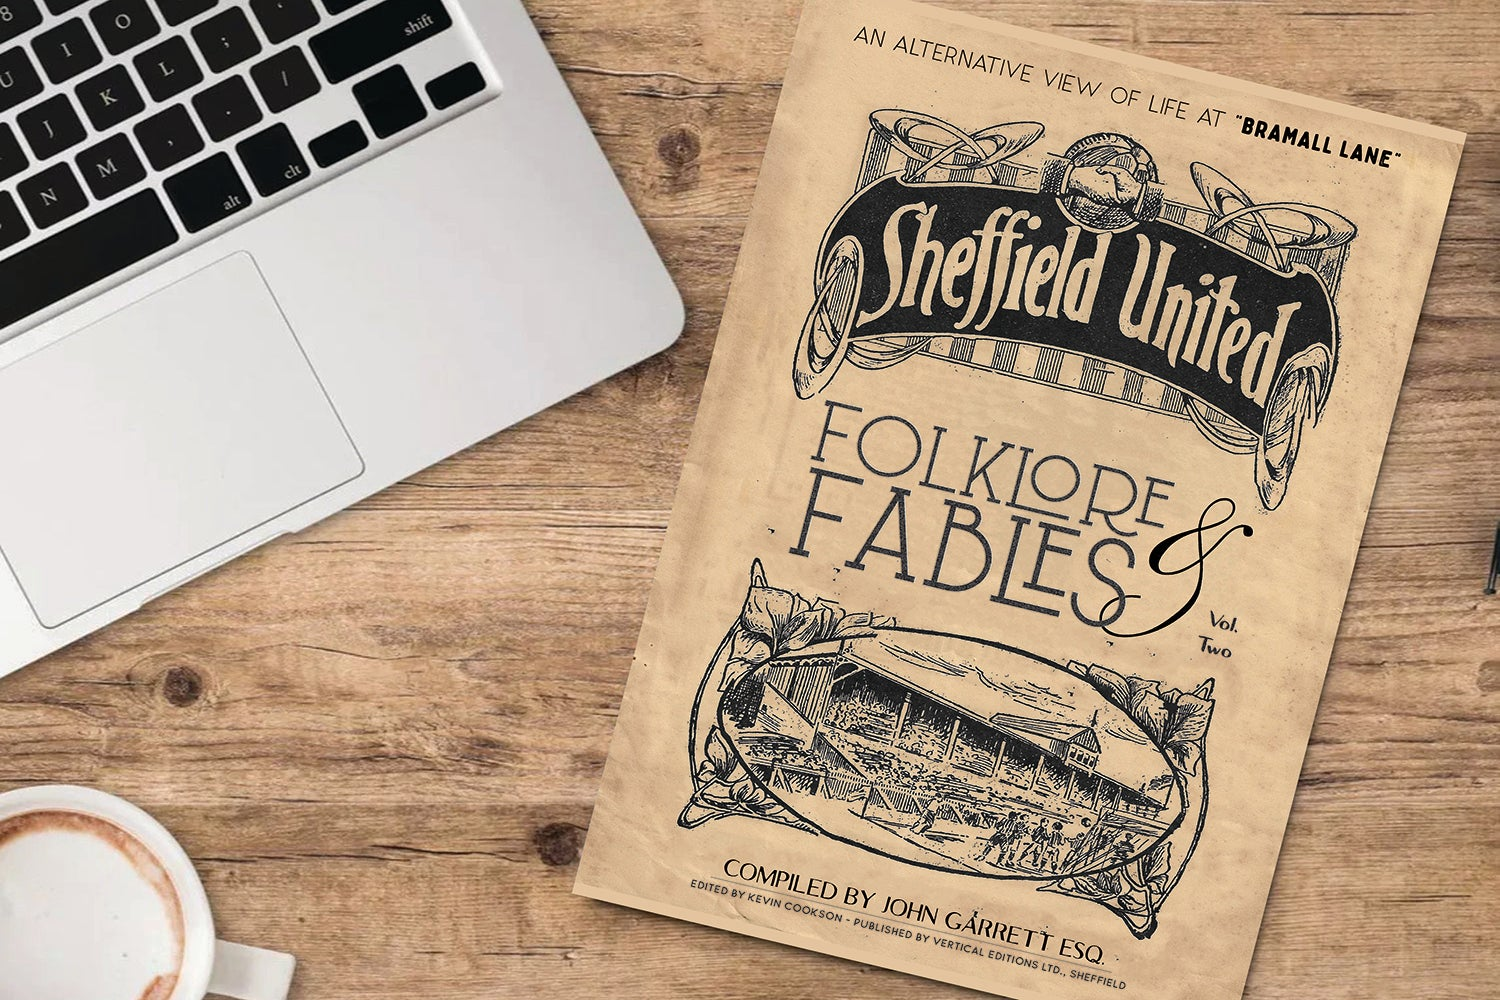 Image of Folklore and Fables - An alternative look at Sheffield United